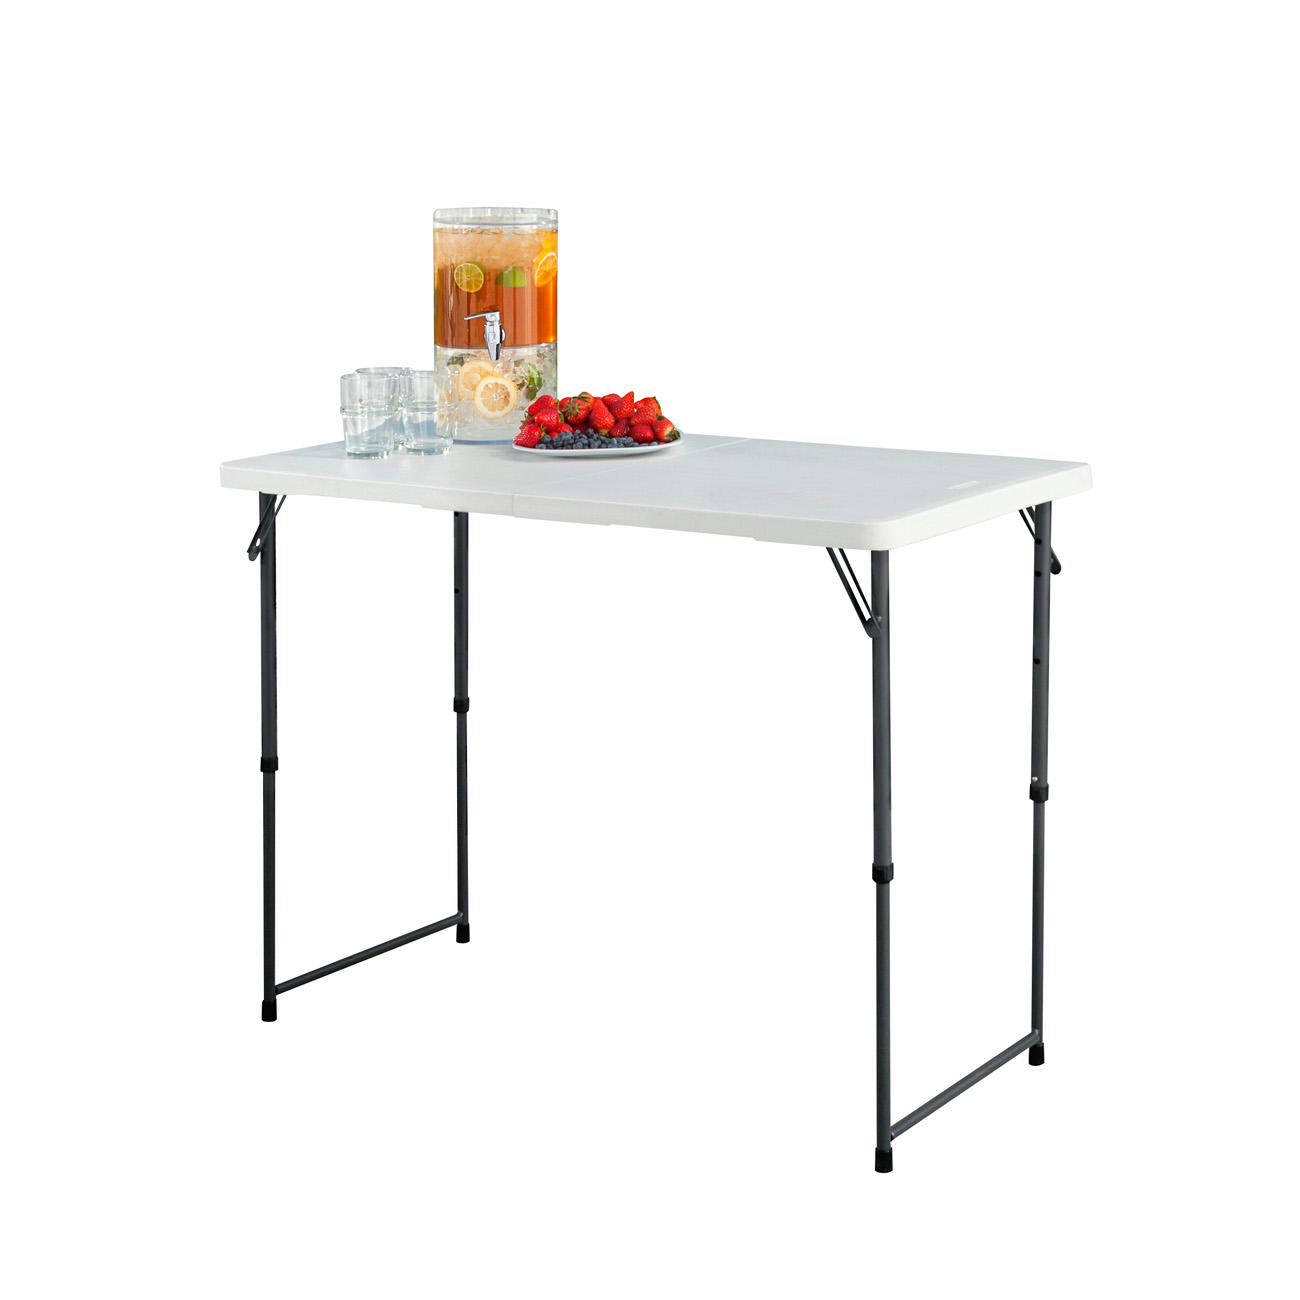 Buy Height Adjustable Folding Table Online